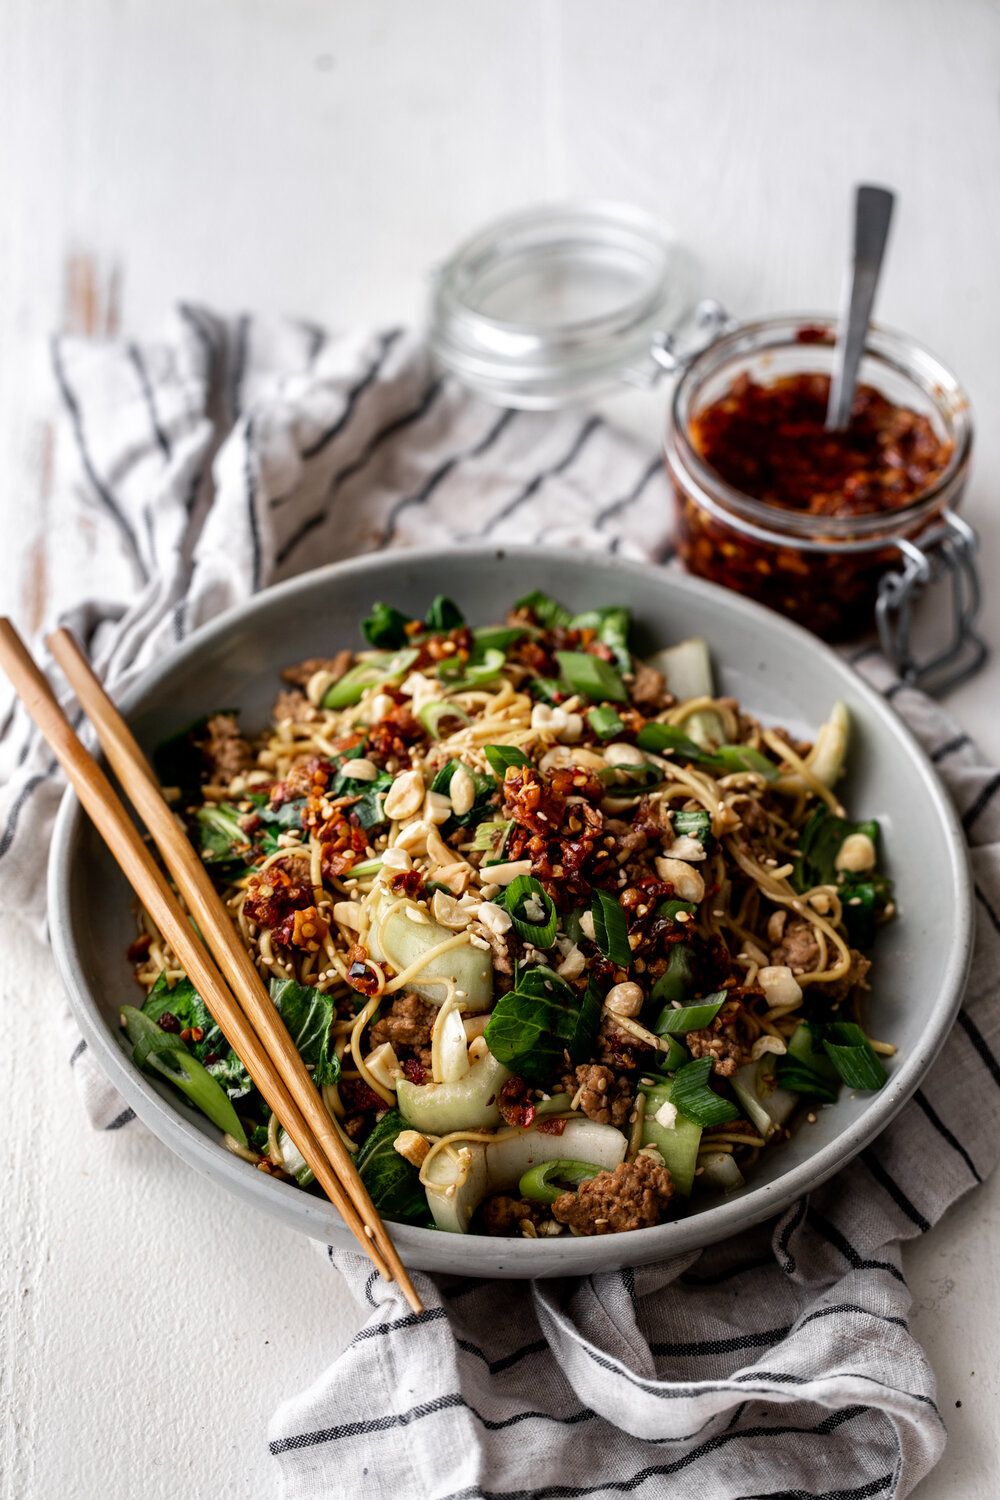 Spicy Dan Dan Noodles with Bok Choy and Crunchy Chili Oil-36.jpg